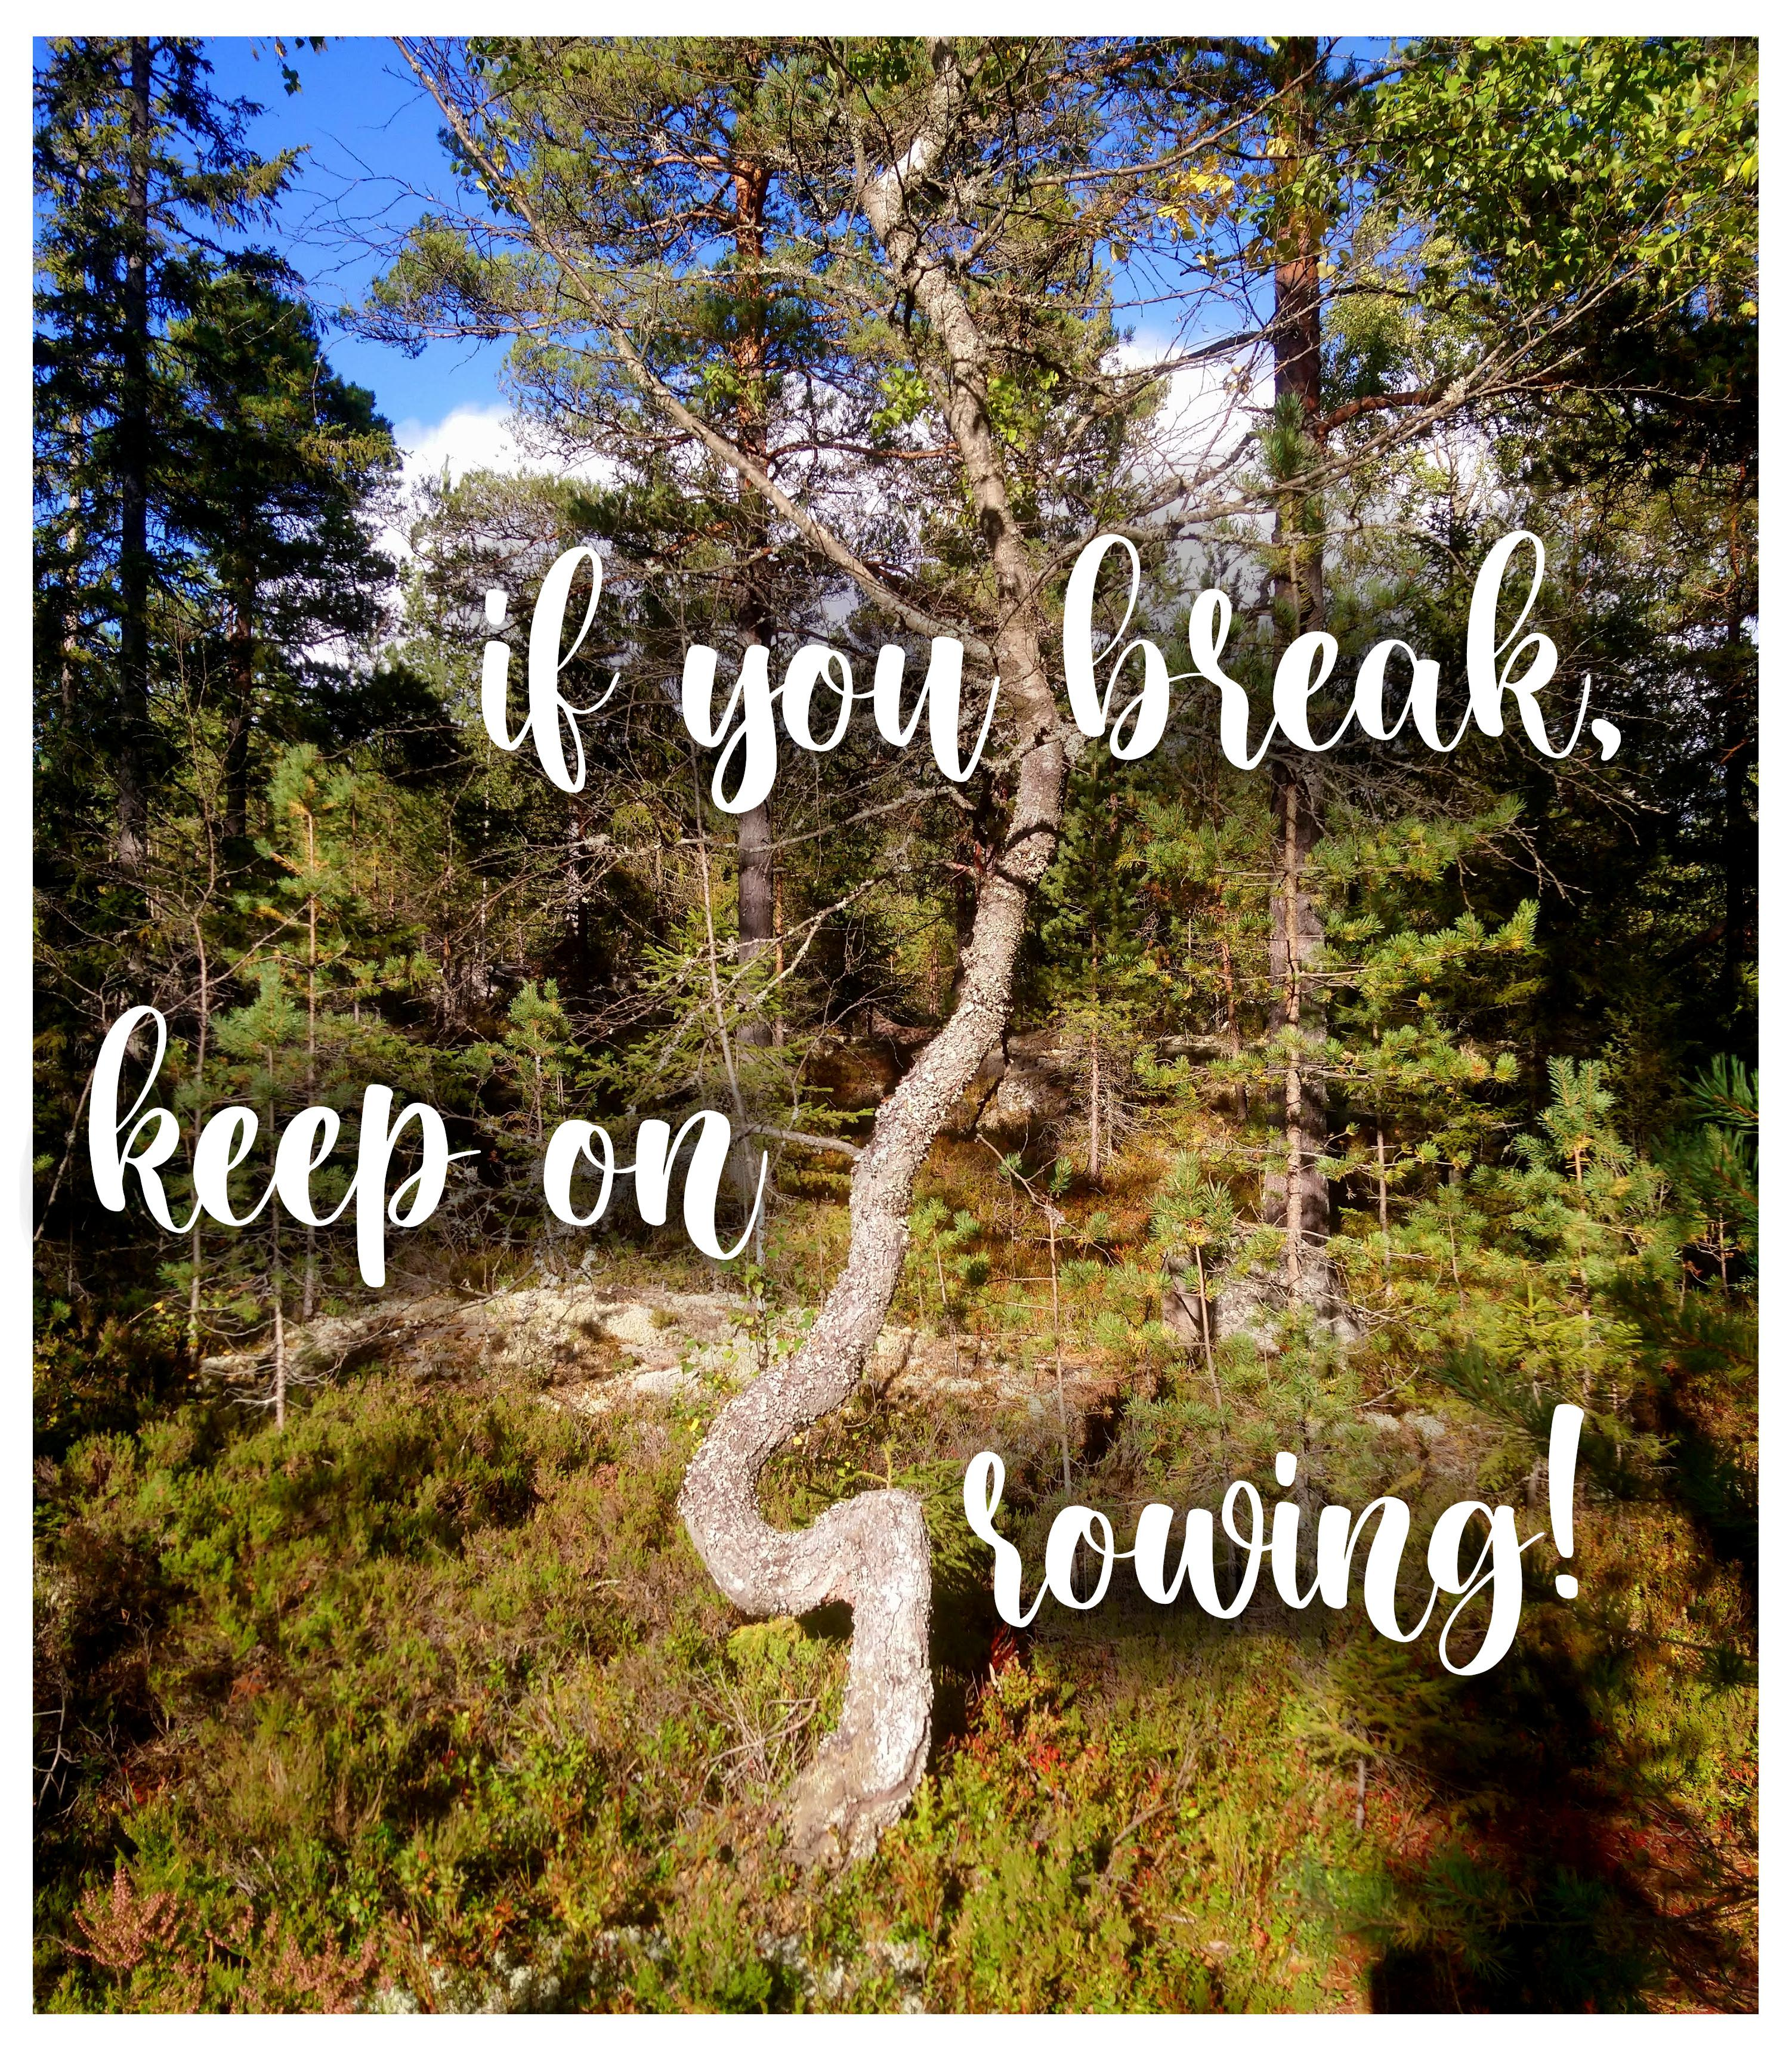 If you break, keep on growing! [Image]